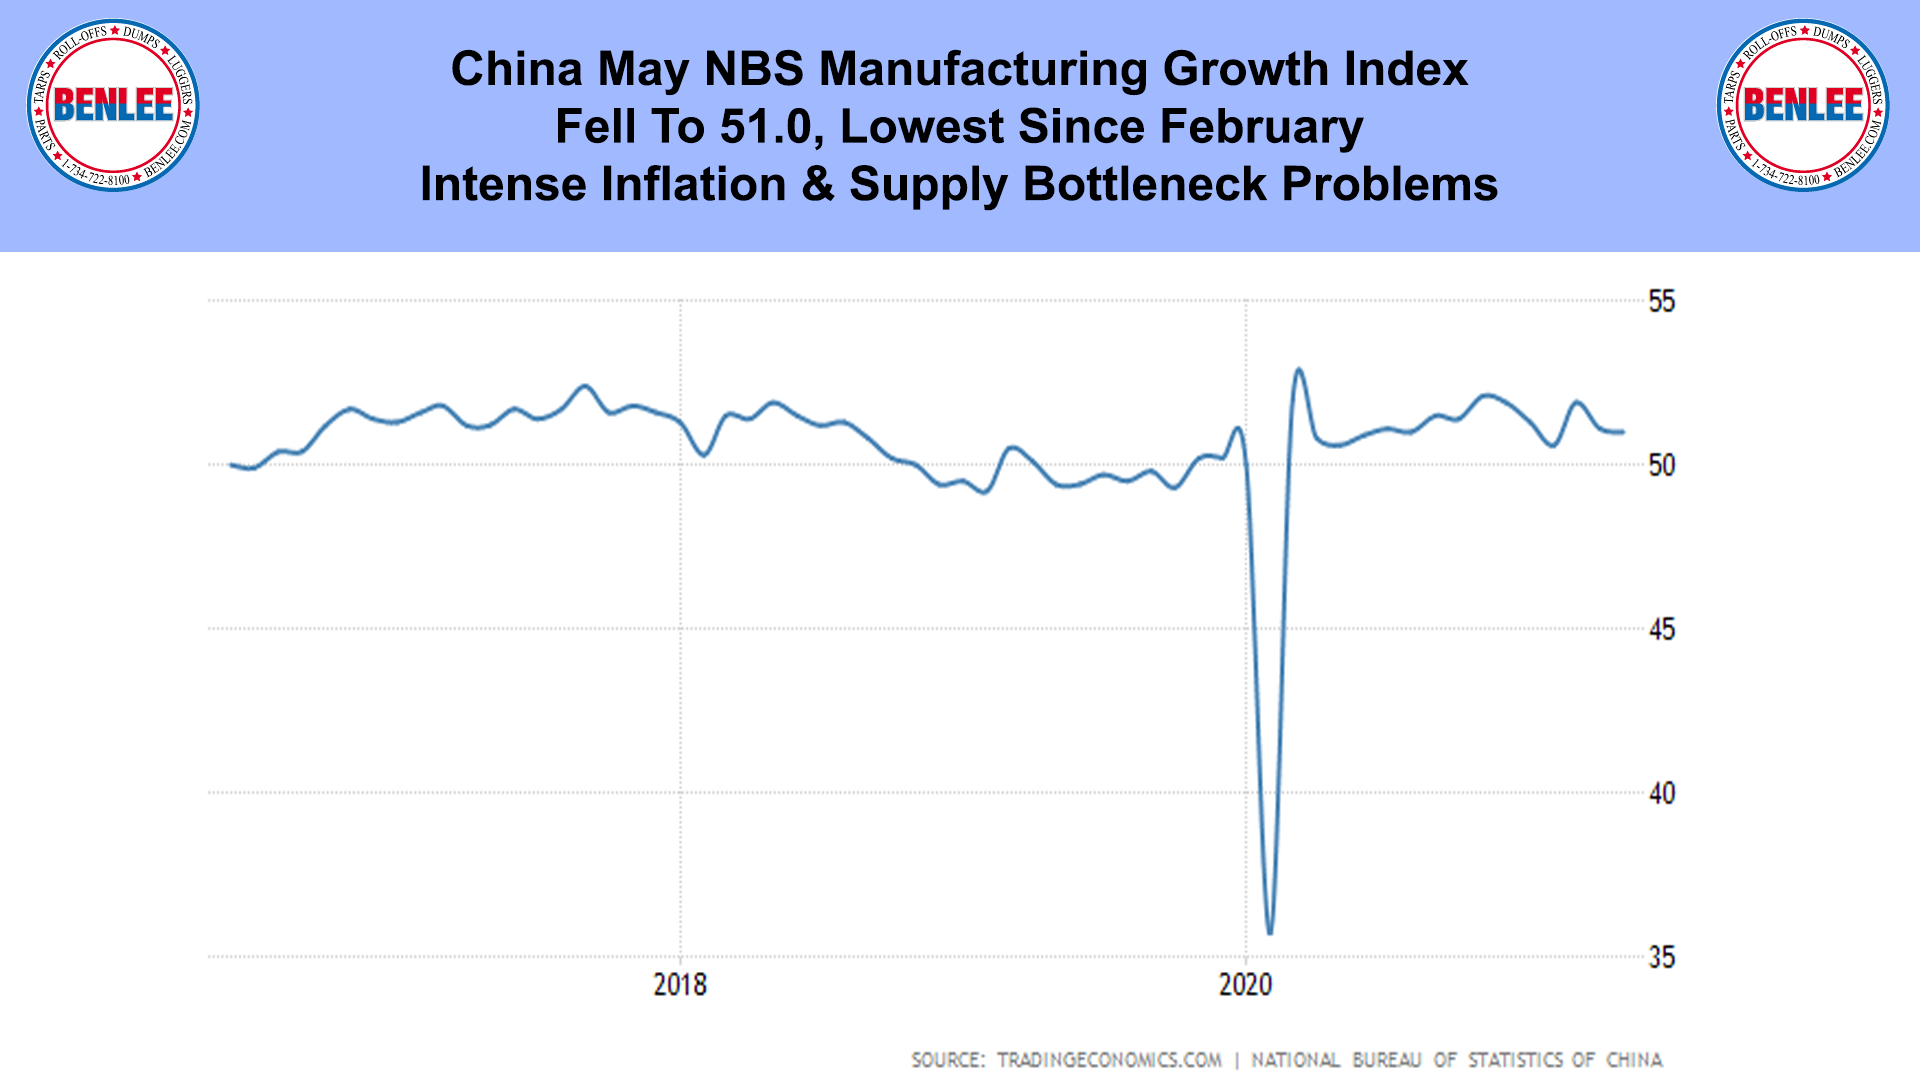 China May NBS Manufacturing Growth Index